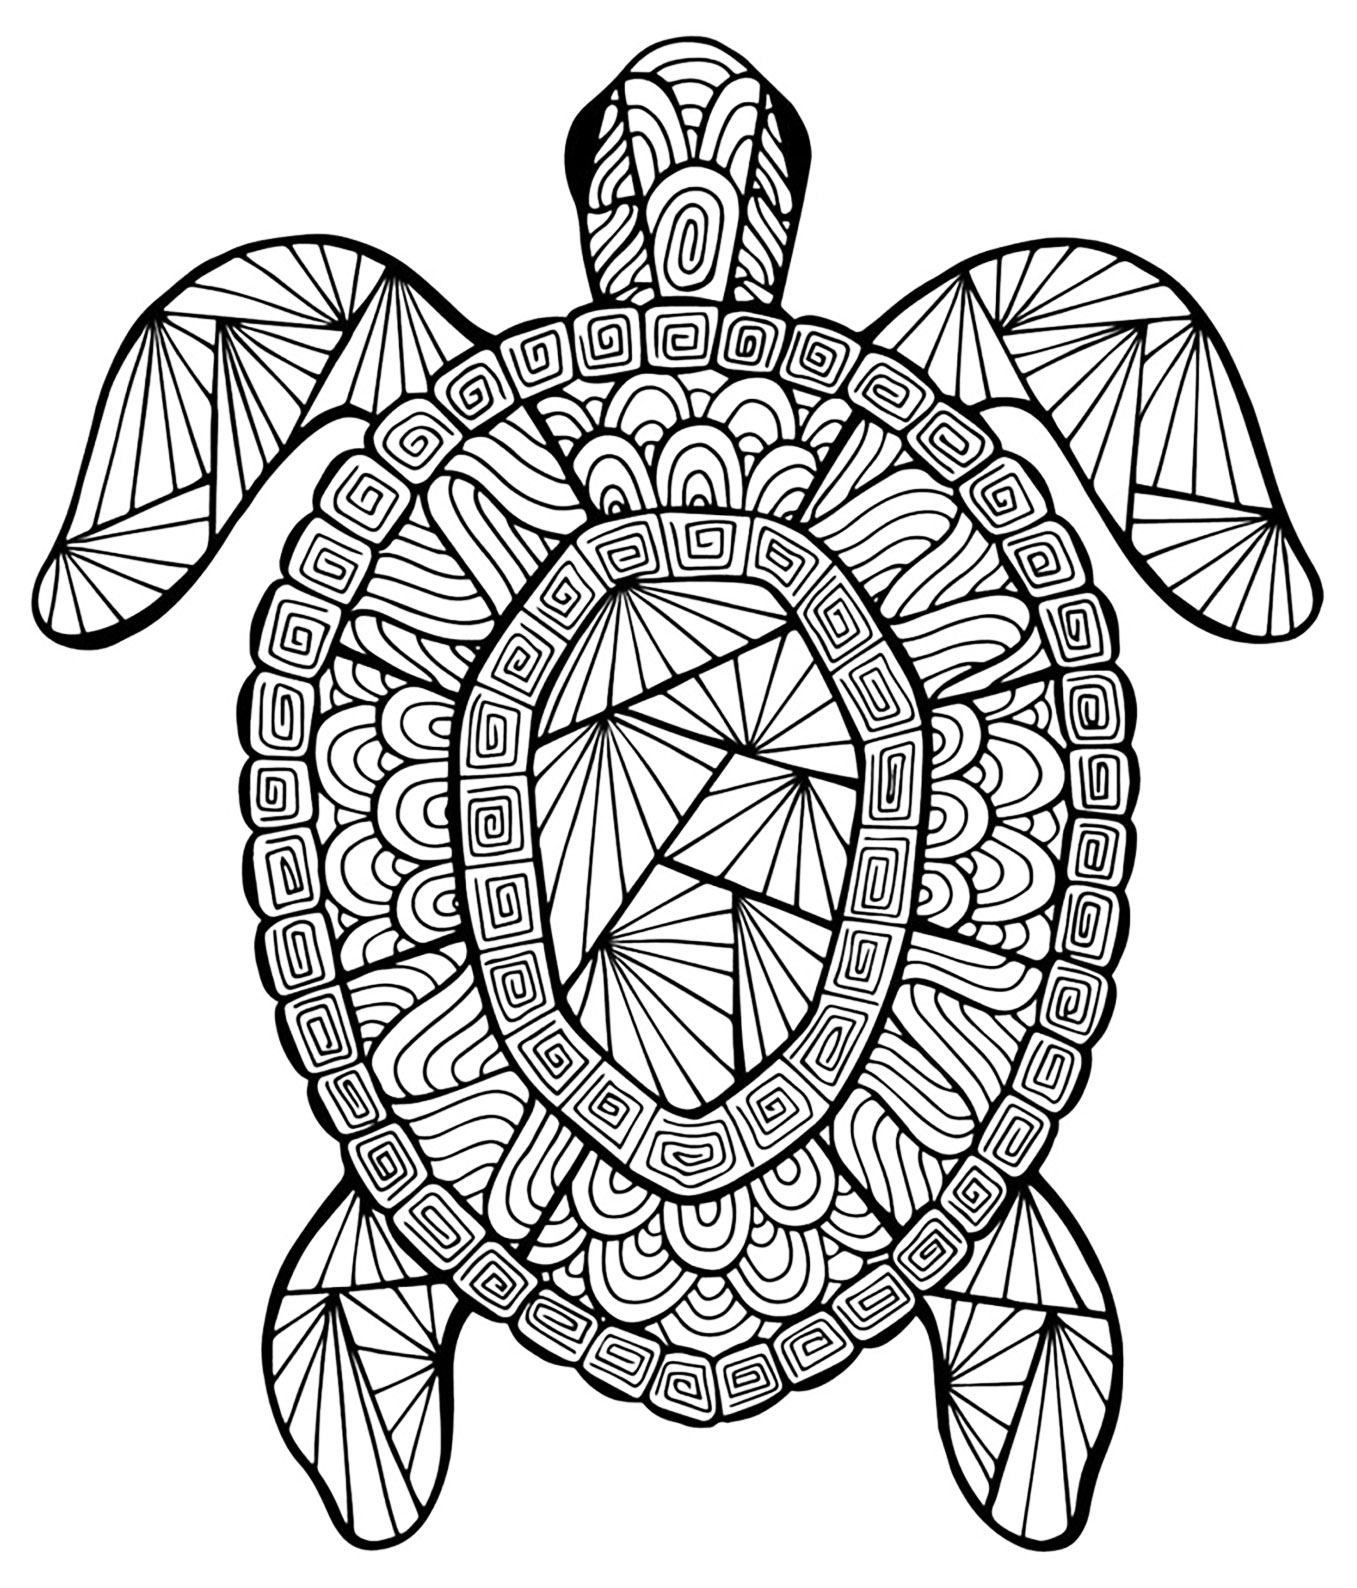 Tortue Coloriages Danimaux 100 Mandalas Zen Anti Stress